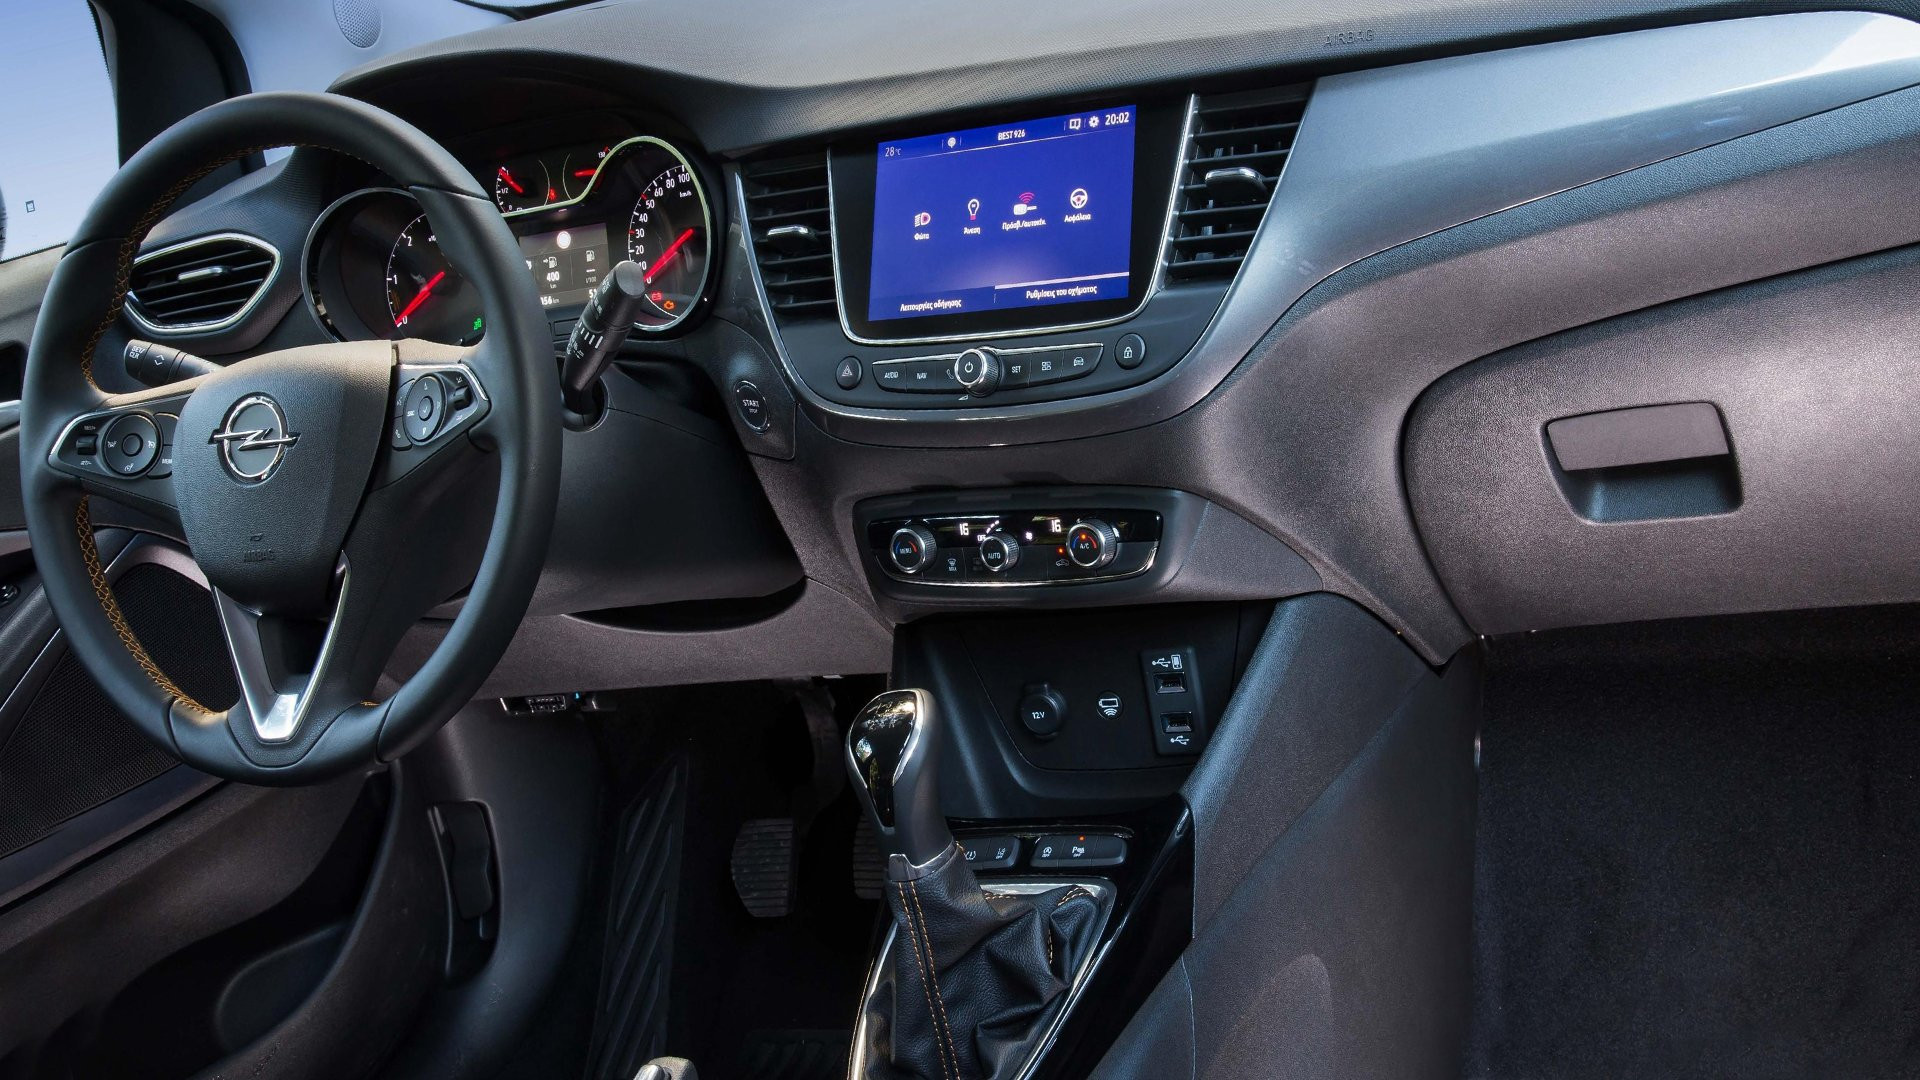 Dashboard Opel Crossland X 2019 HD